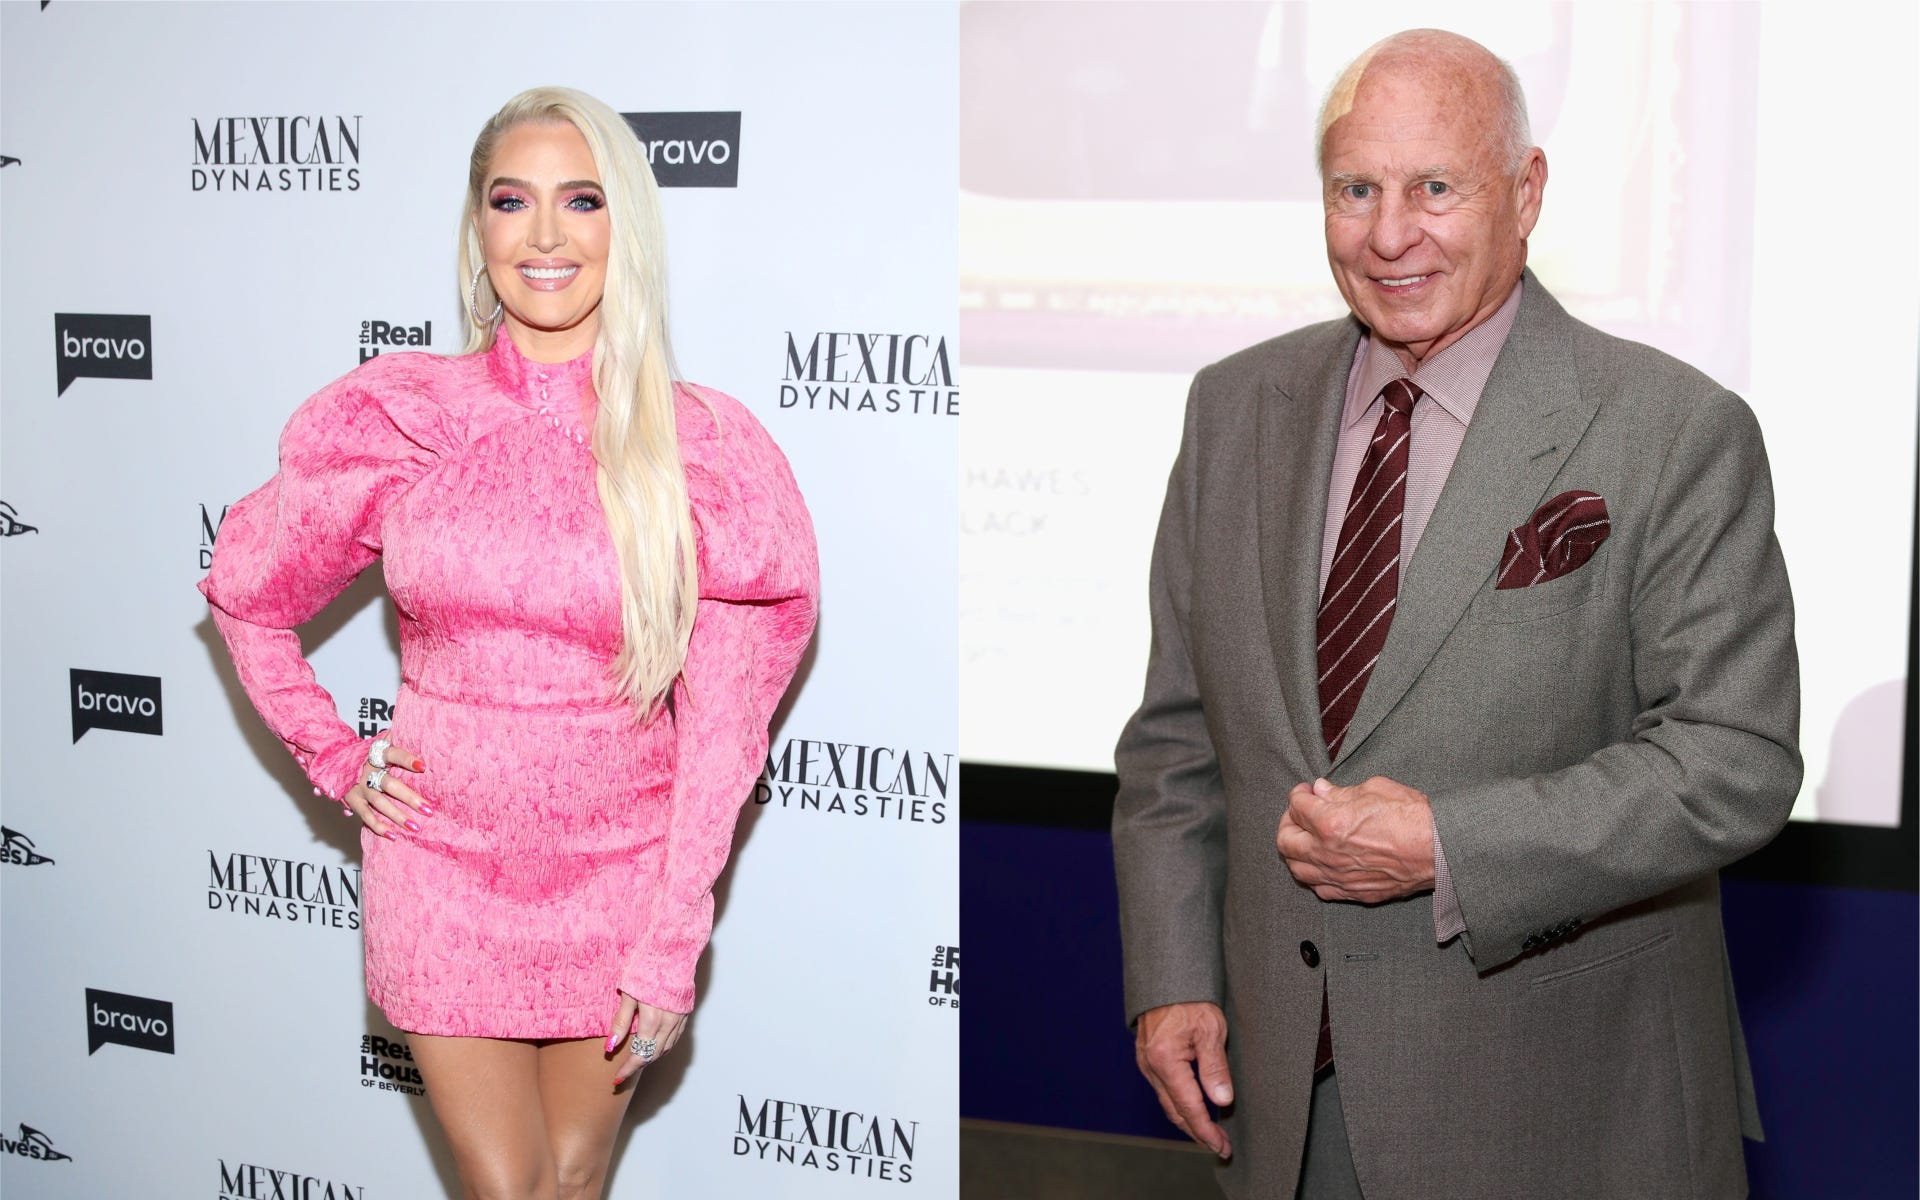 Erika Jayne Allegedly Finding Out About Tom Girardi Case Through The Press — RHOBH Star 'Done' Protecting Him And Will Address Divorce On Show